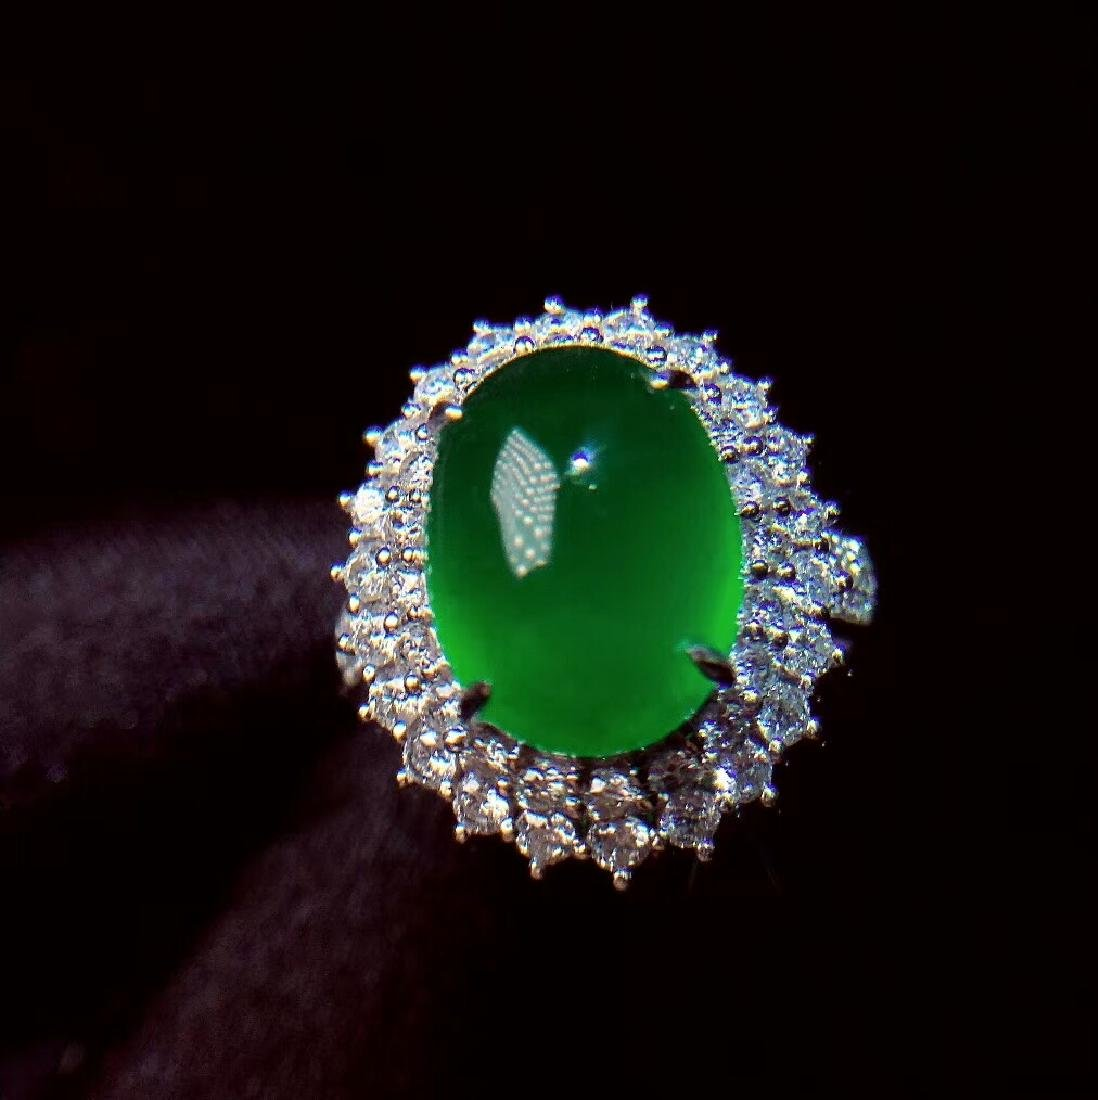 7.6ct Emerald Ring in 18kt White Gold